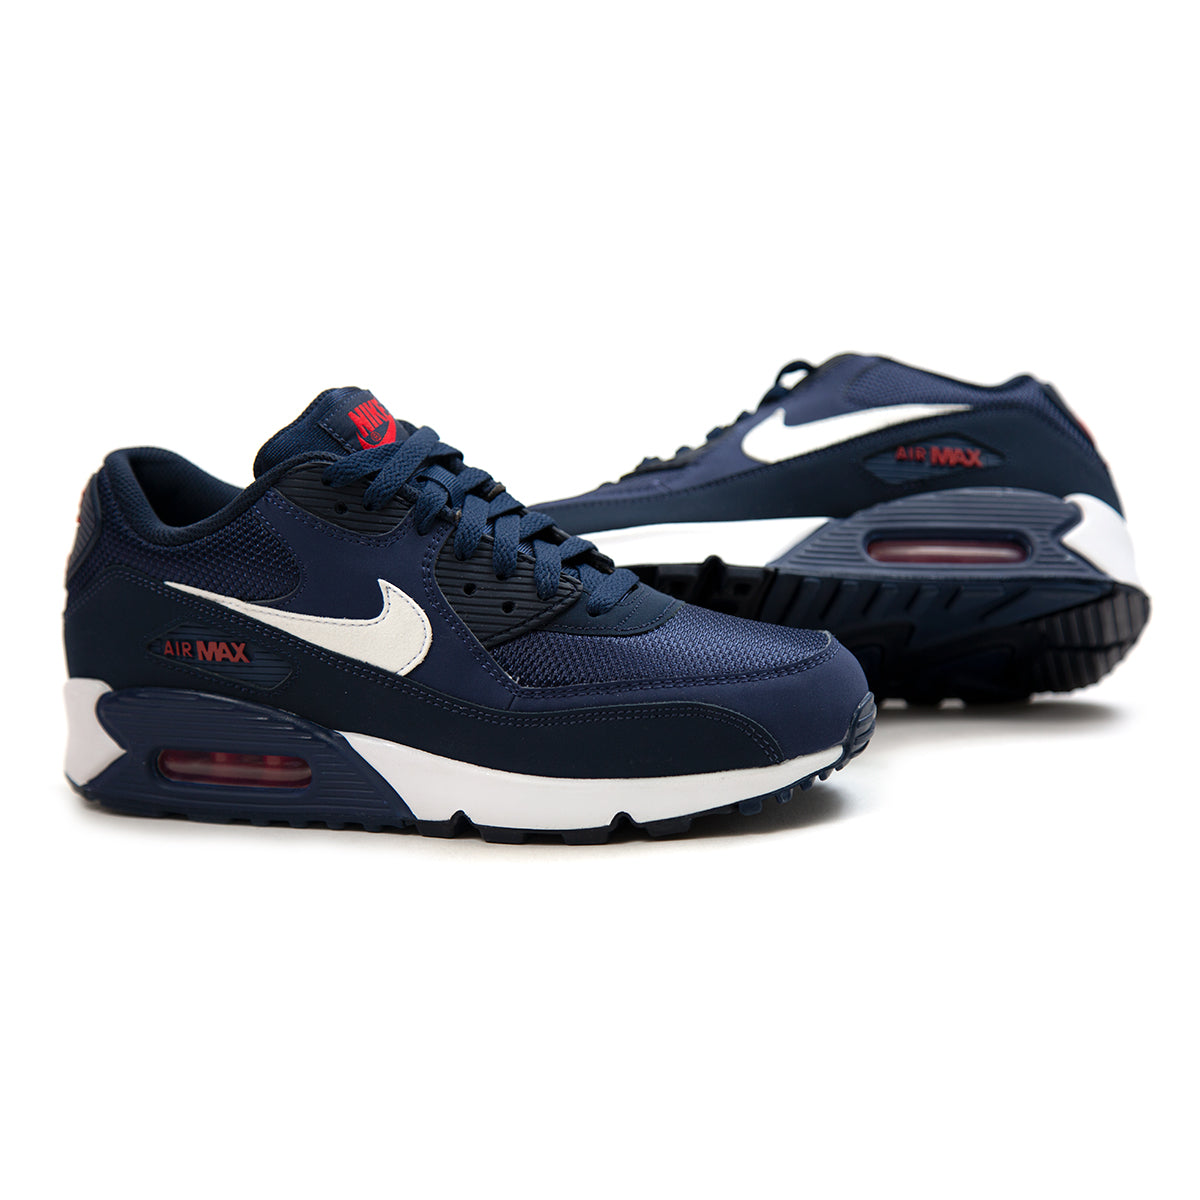 ConceptsIntl | Nike Air Max '90 Essential (Midnight Navy